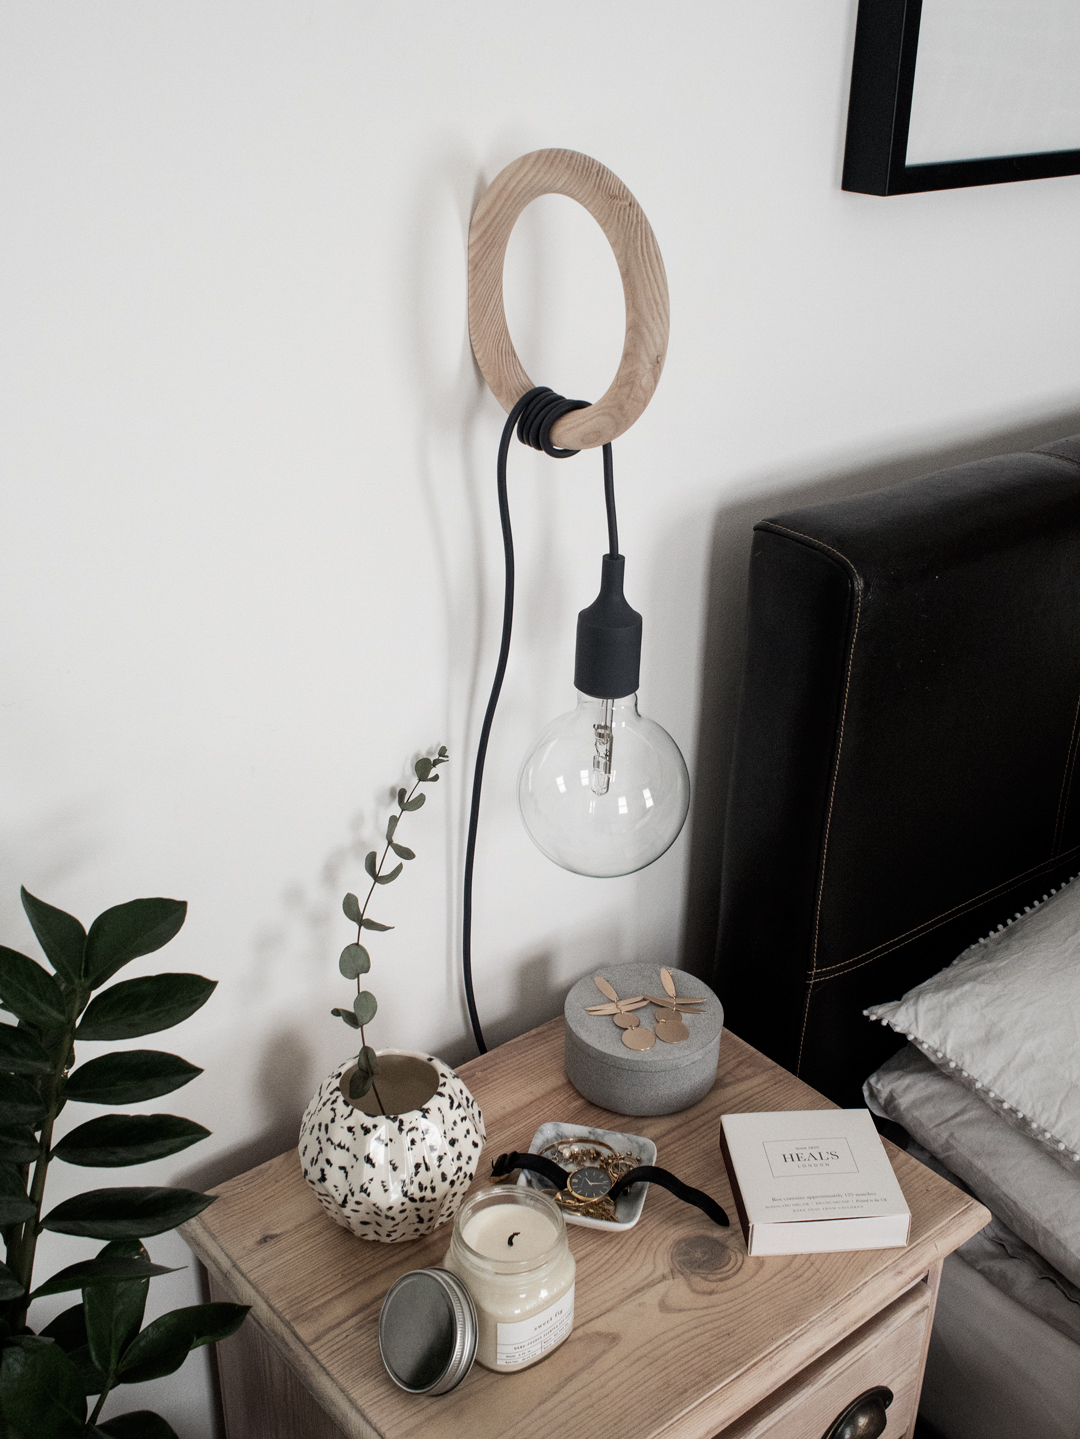 A Bedside Lamp With A Difference